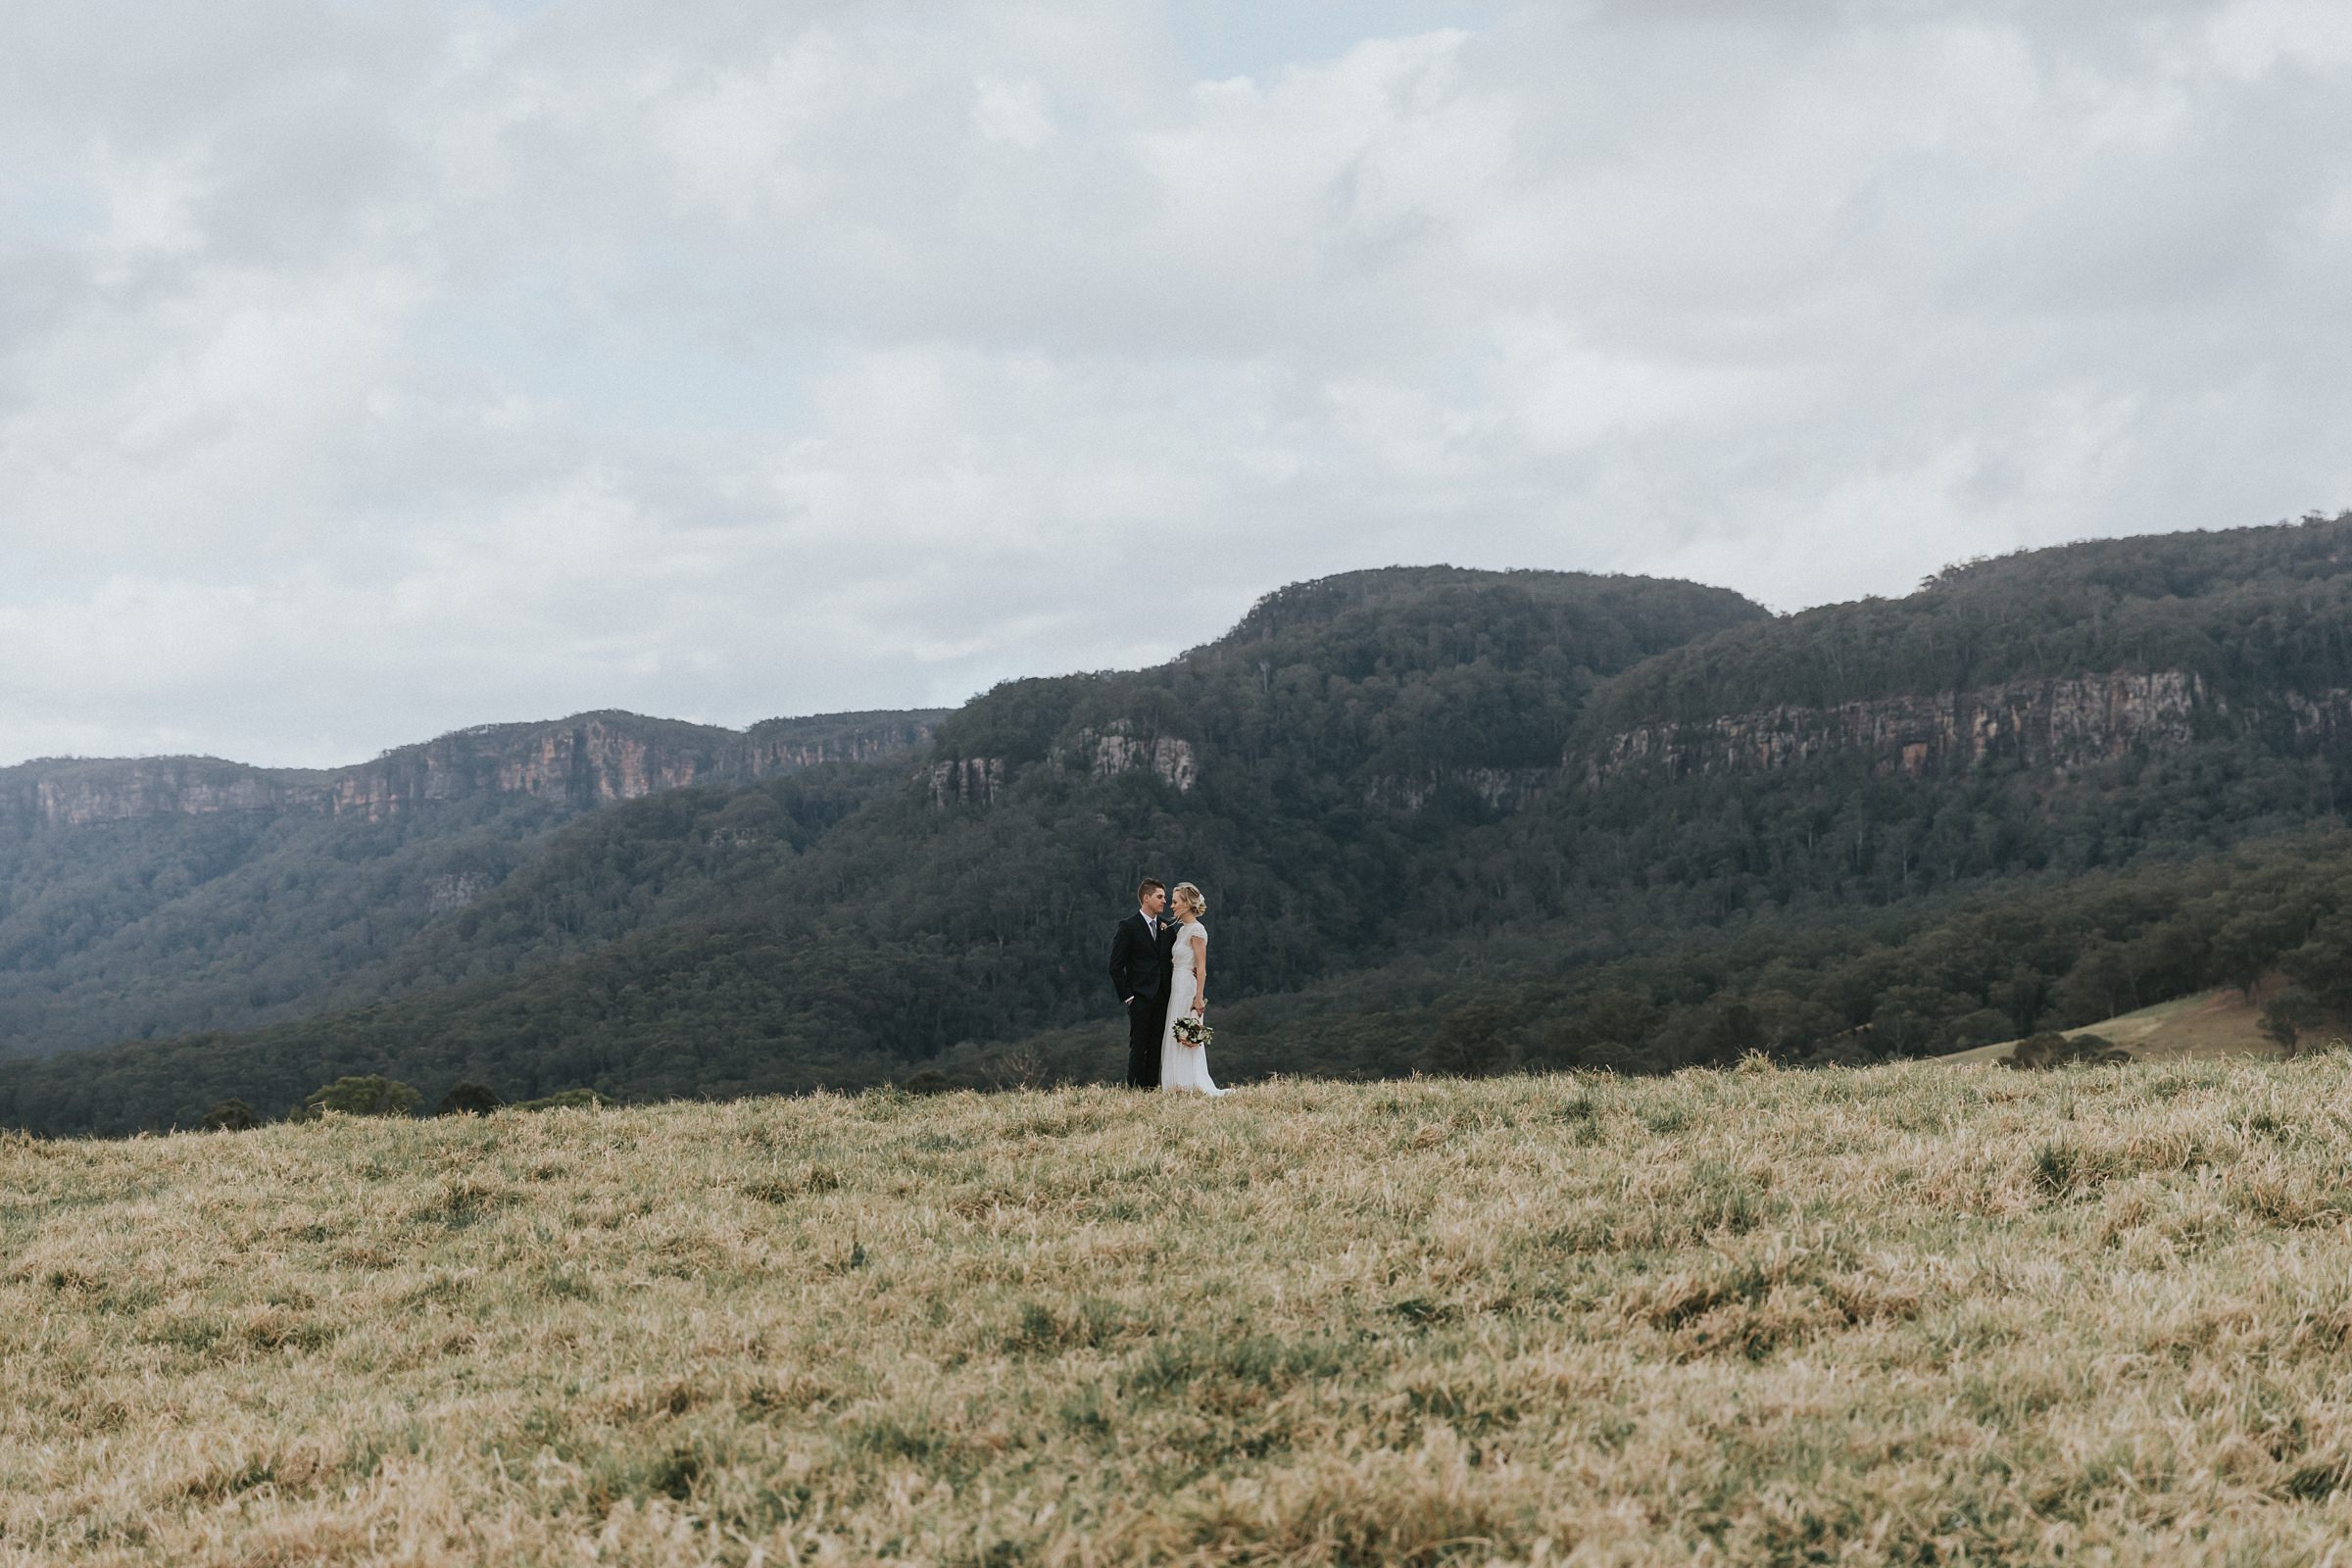 kangaroo valley wedding photography by jonathan david